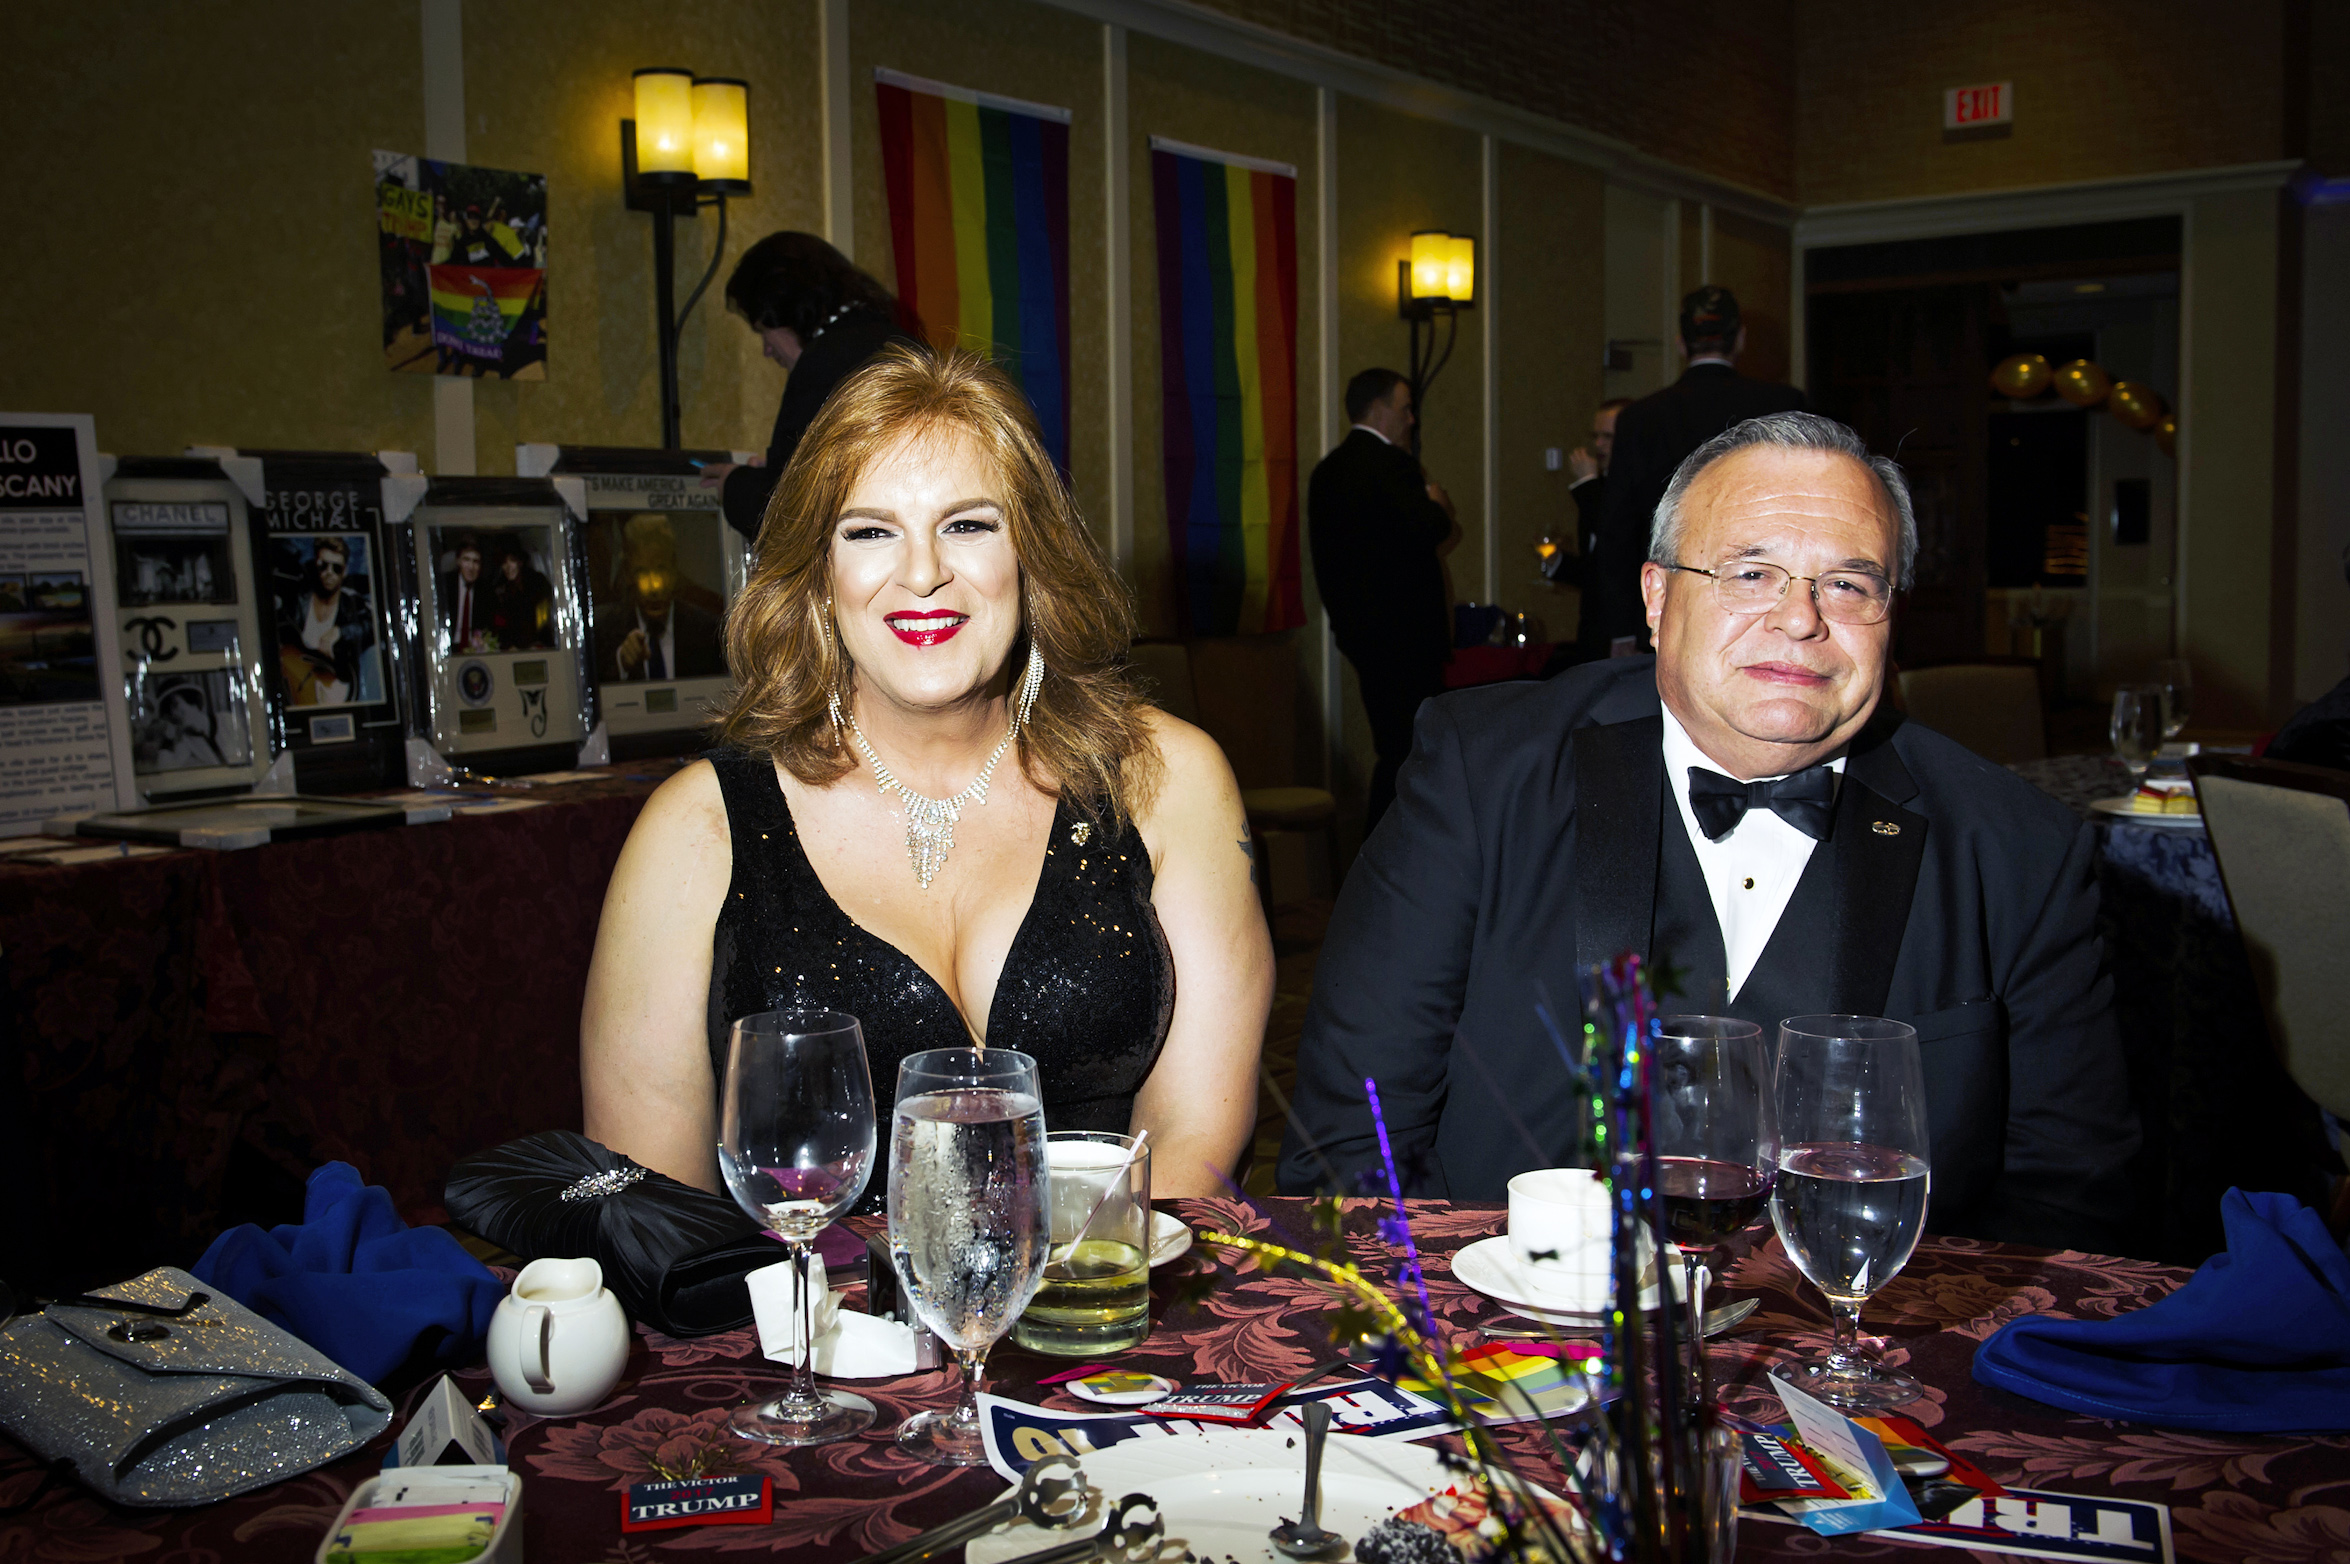 Scenes from the Inaugural Deploraball hosted by Gays for Trump at the Bolger Center in Potomac, Maryland on January 20, 2017.